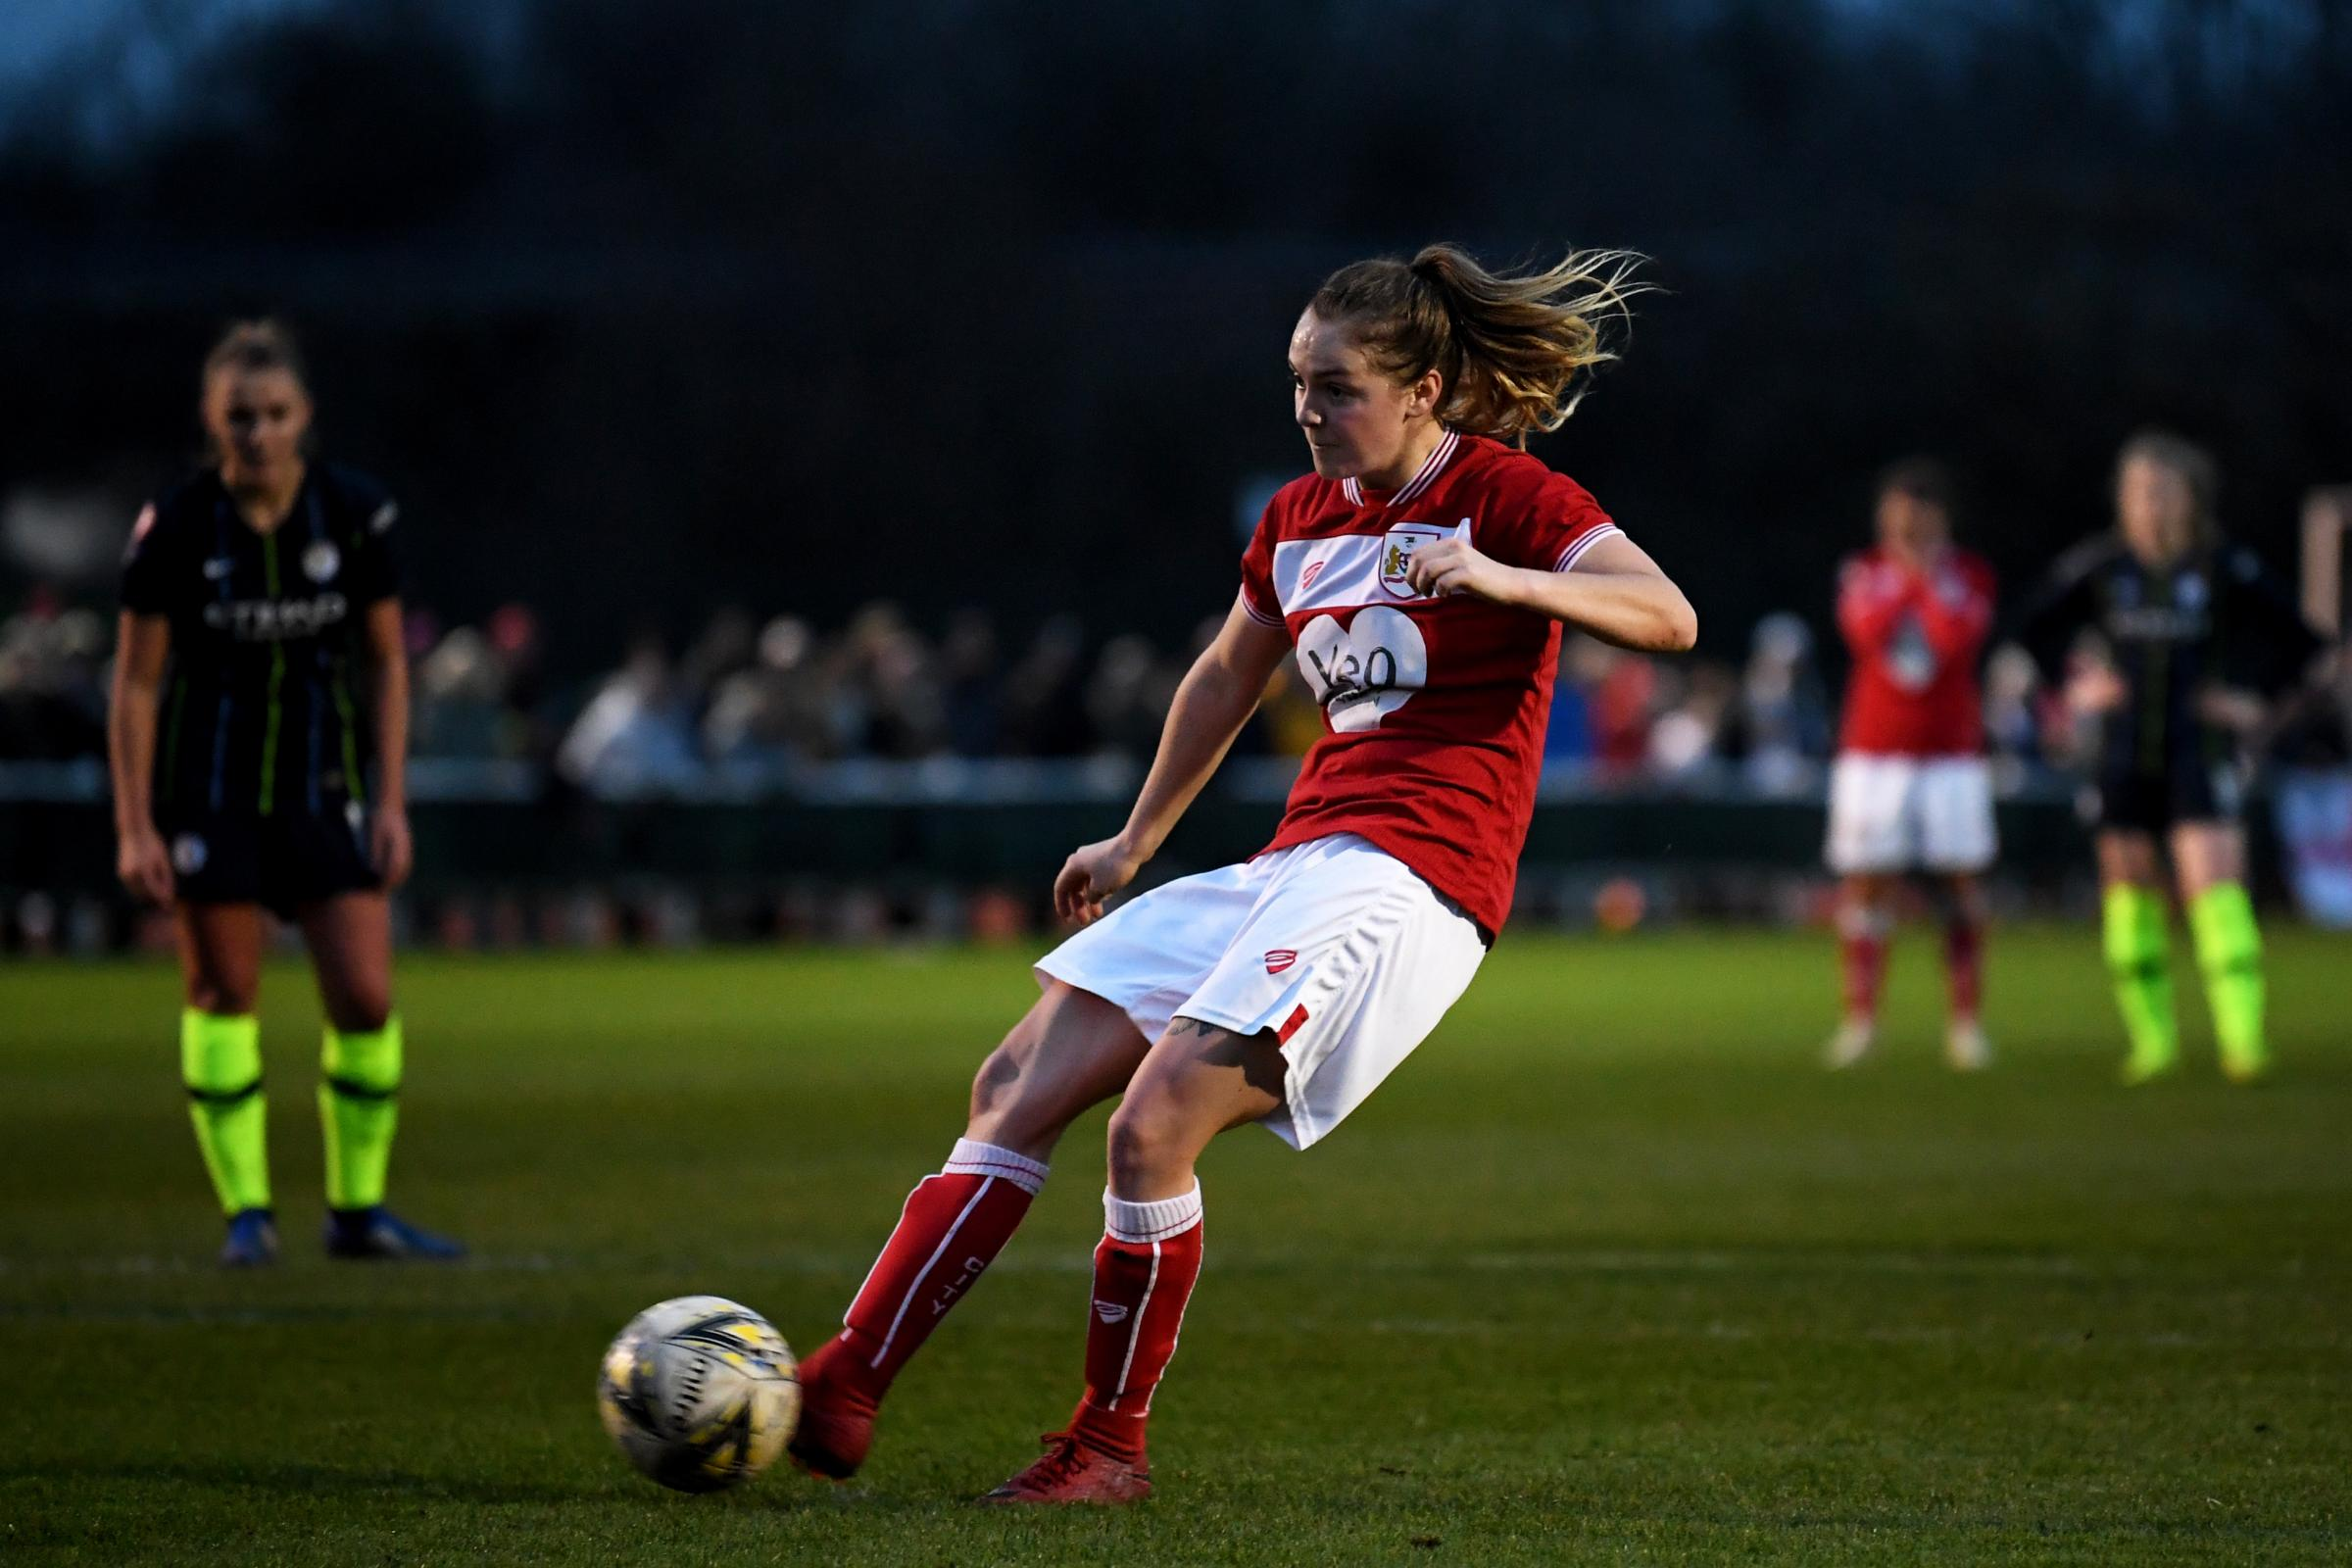 Revitalised Lucy Graham hopes to impress in Spain